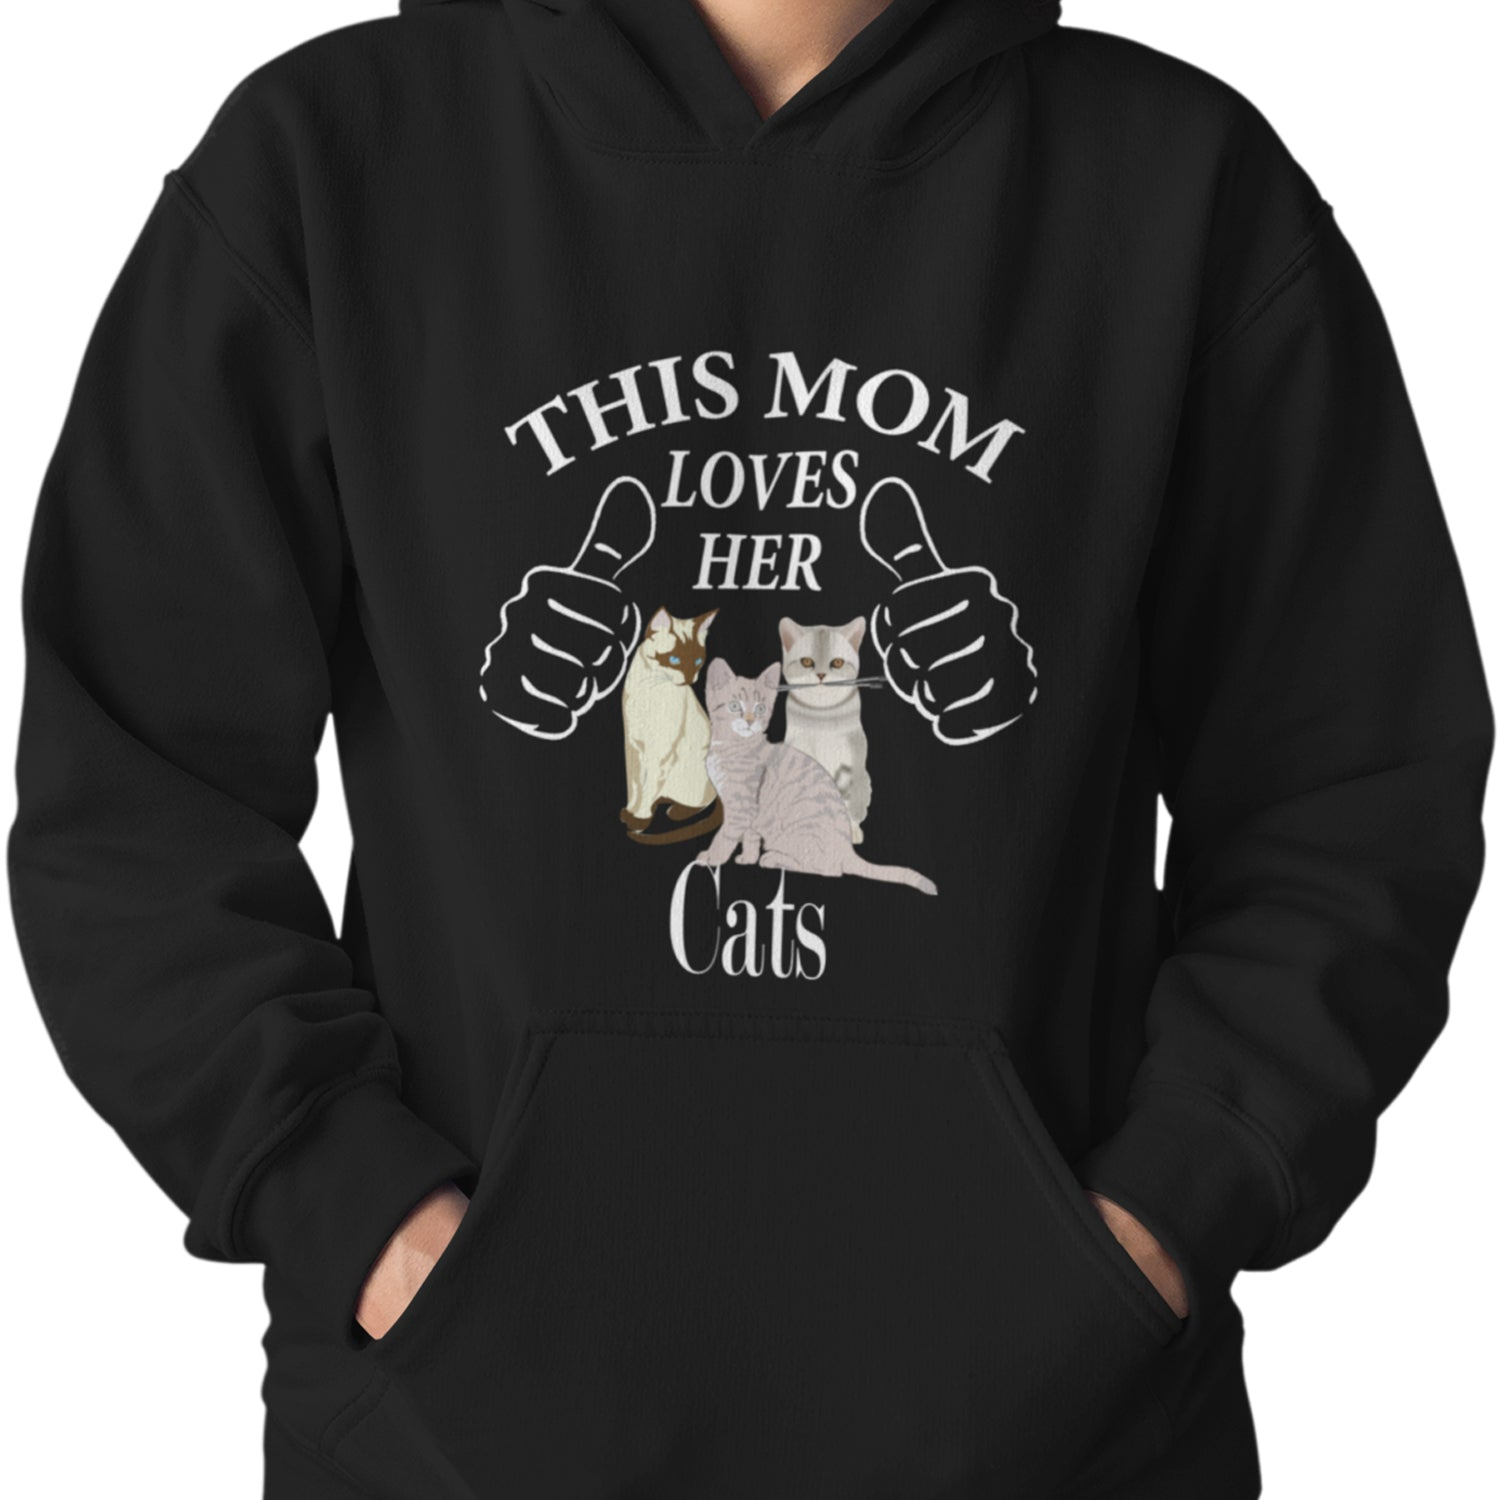 Cat Lover Hoodie This Mom Loves Her Cats Cotton Polyester Unisex Hoodie Pullover With Pouch Pocket